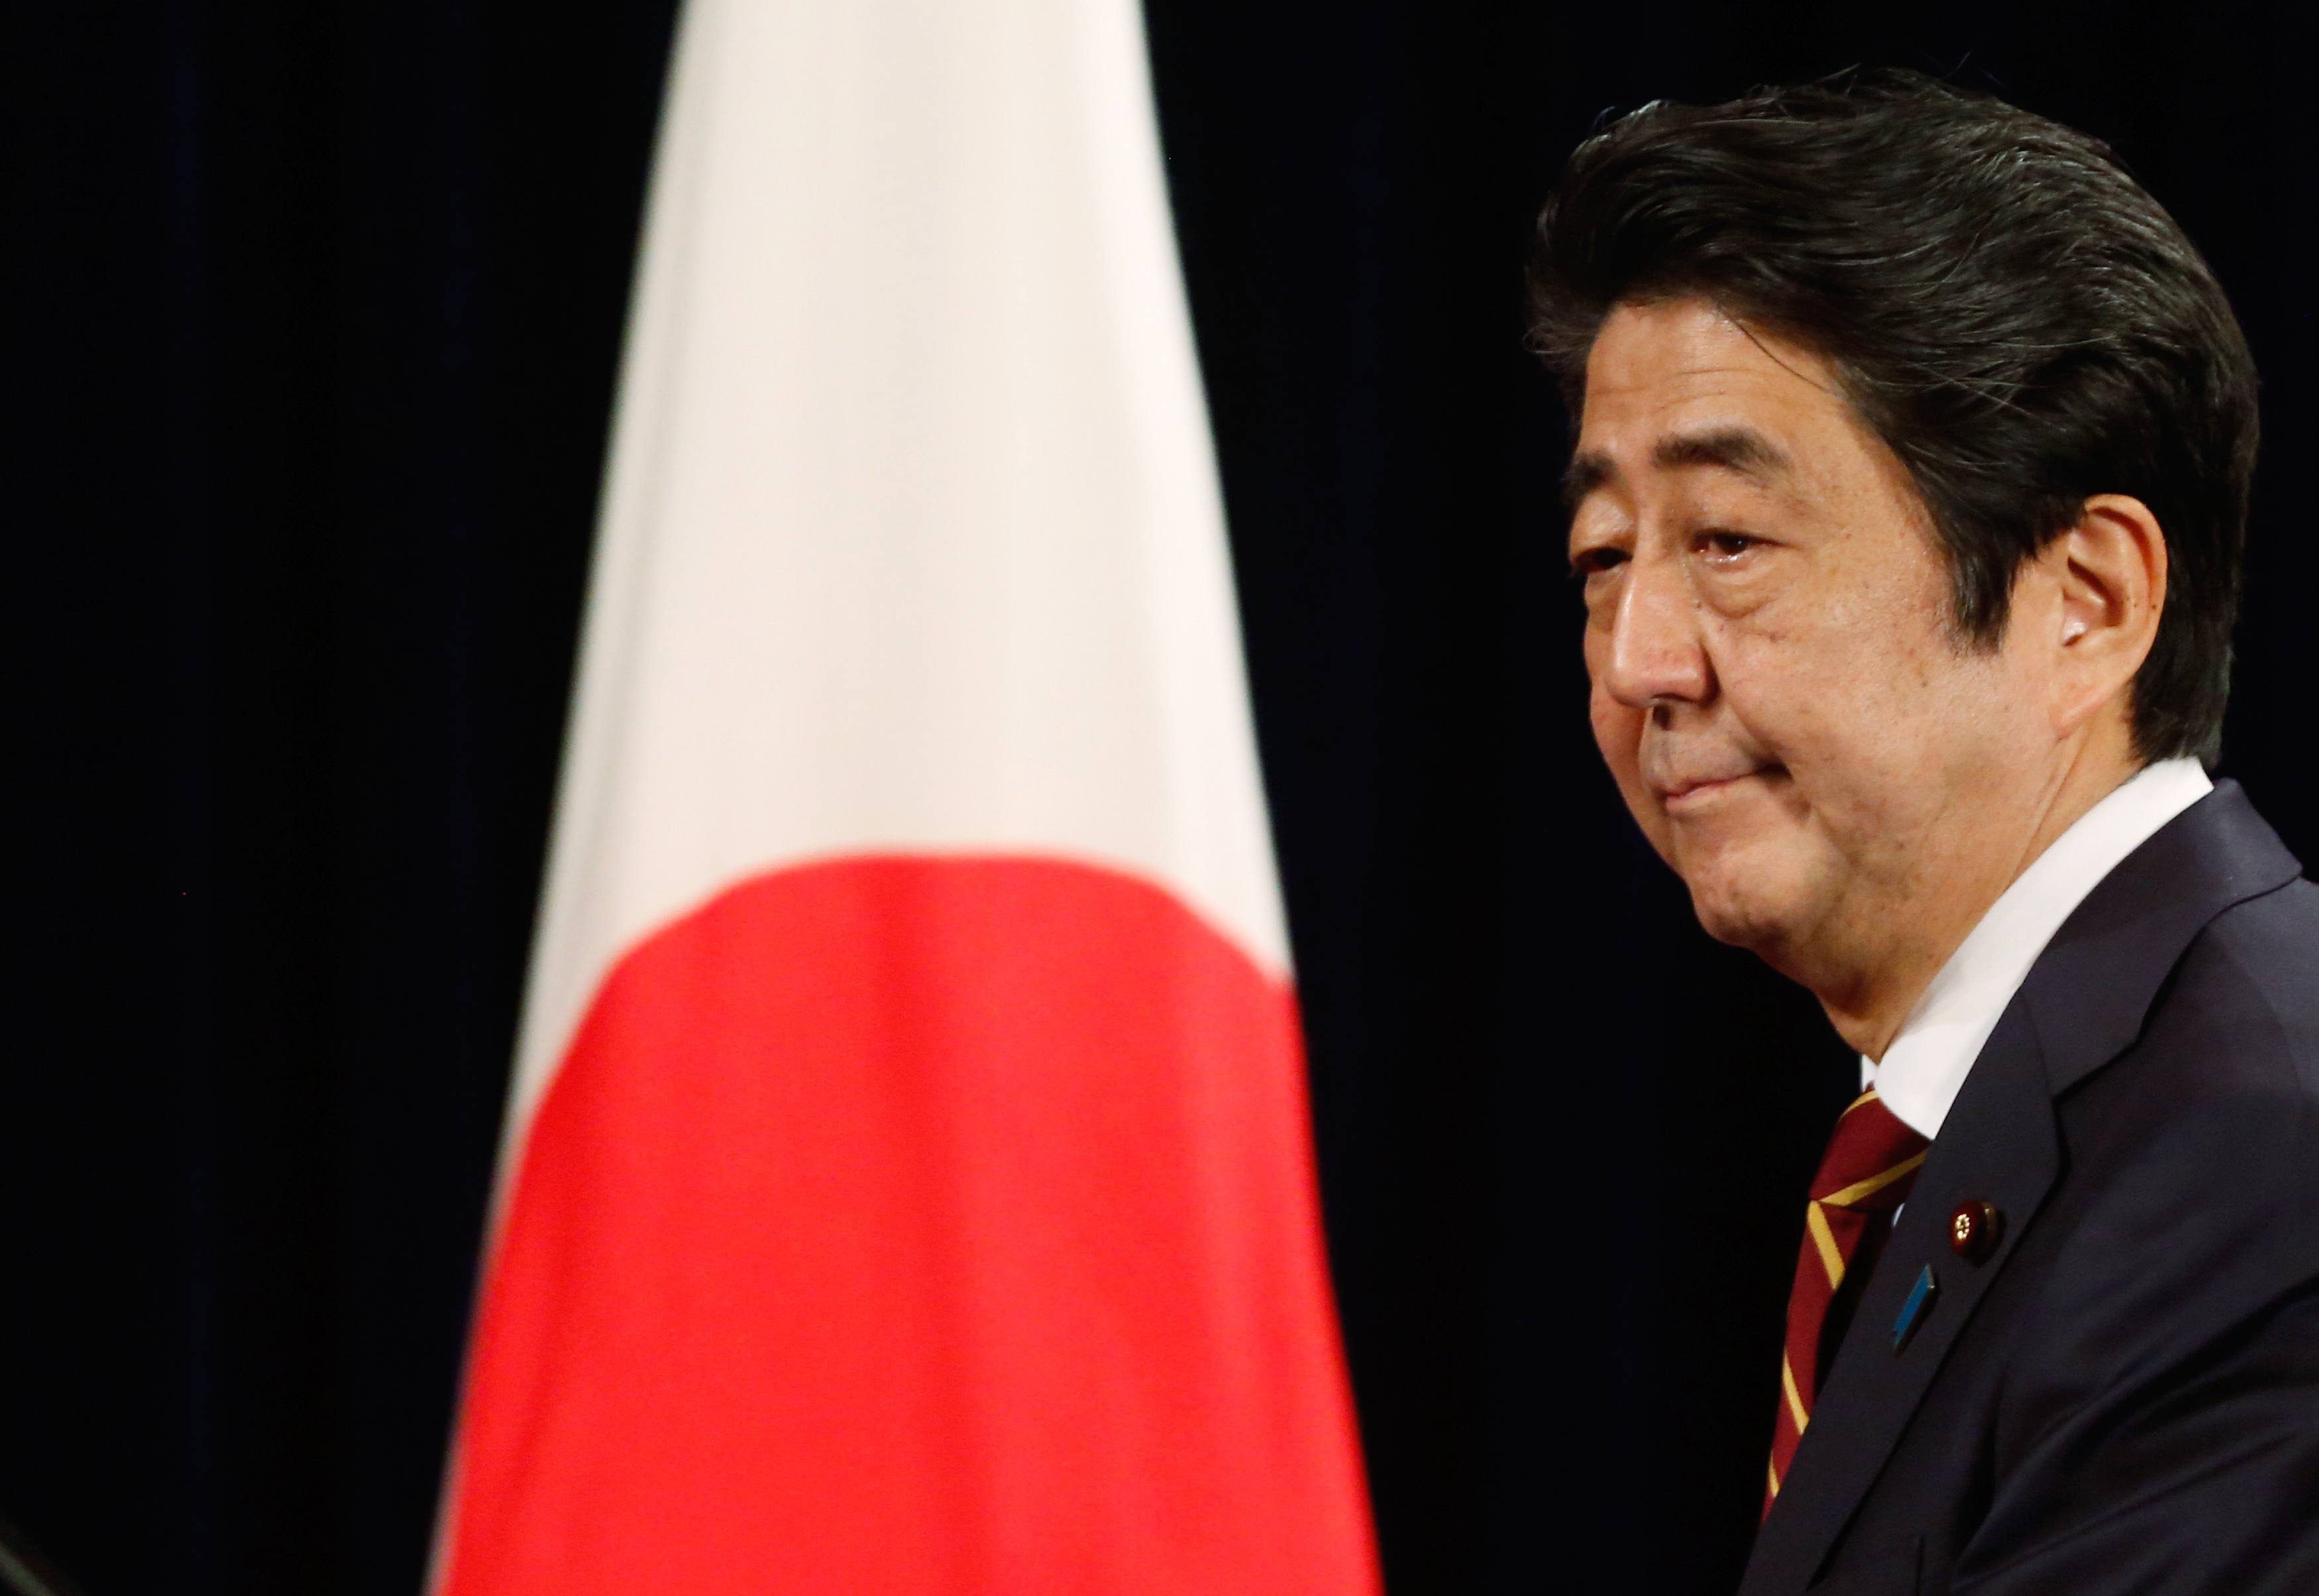 Prime Minister Shinzo Abe has always been a stalwart supporter of Japanese casinos